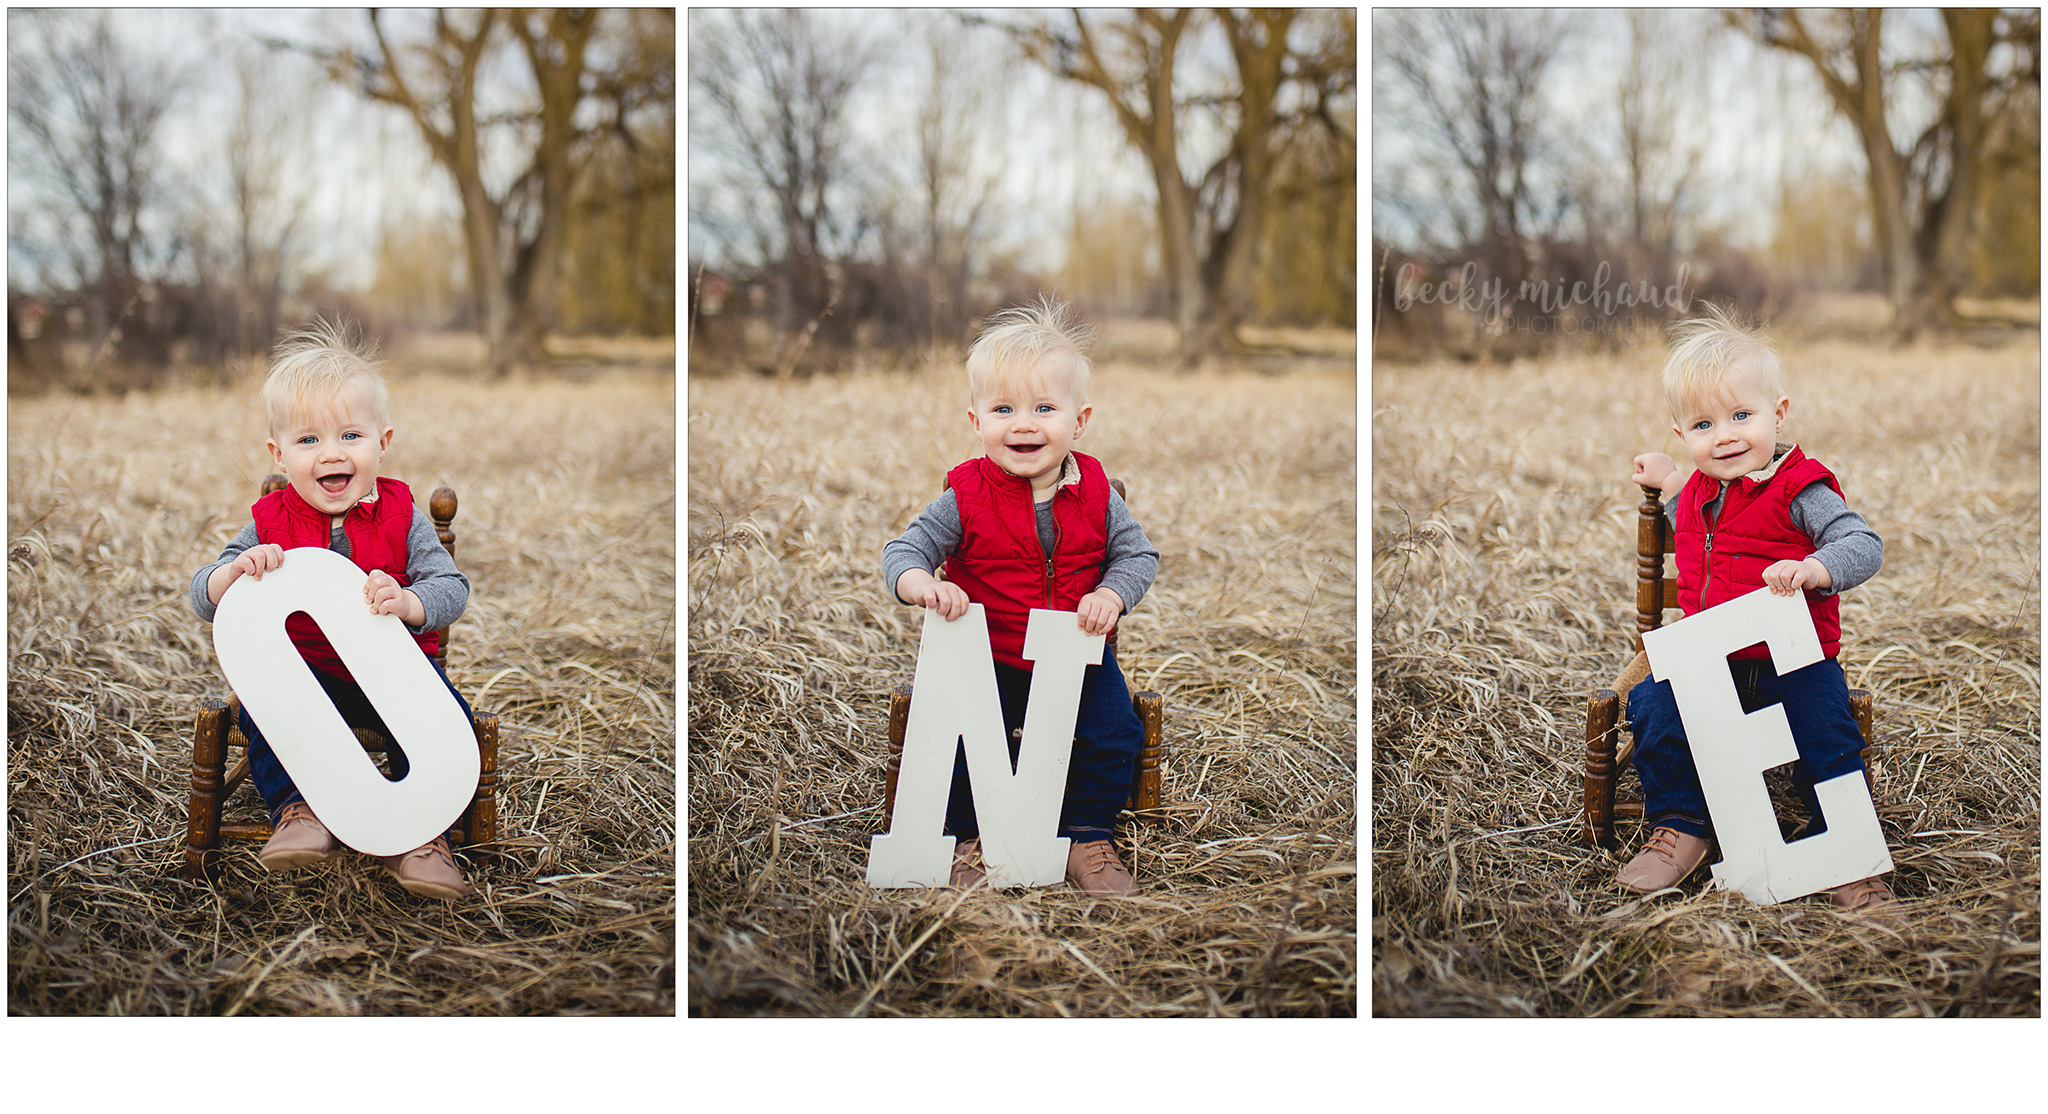 One year old portraits using big white letters spelling ONE